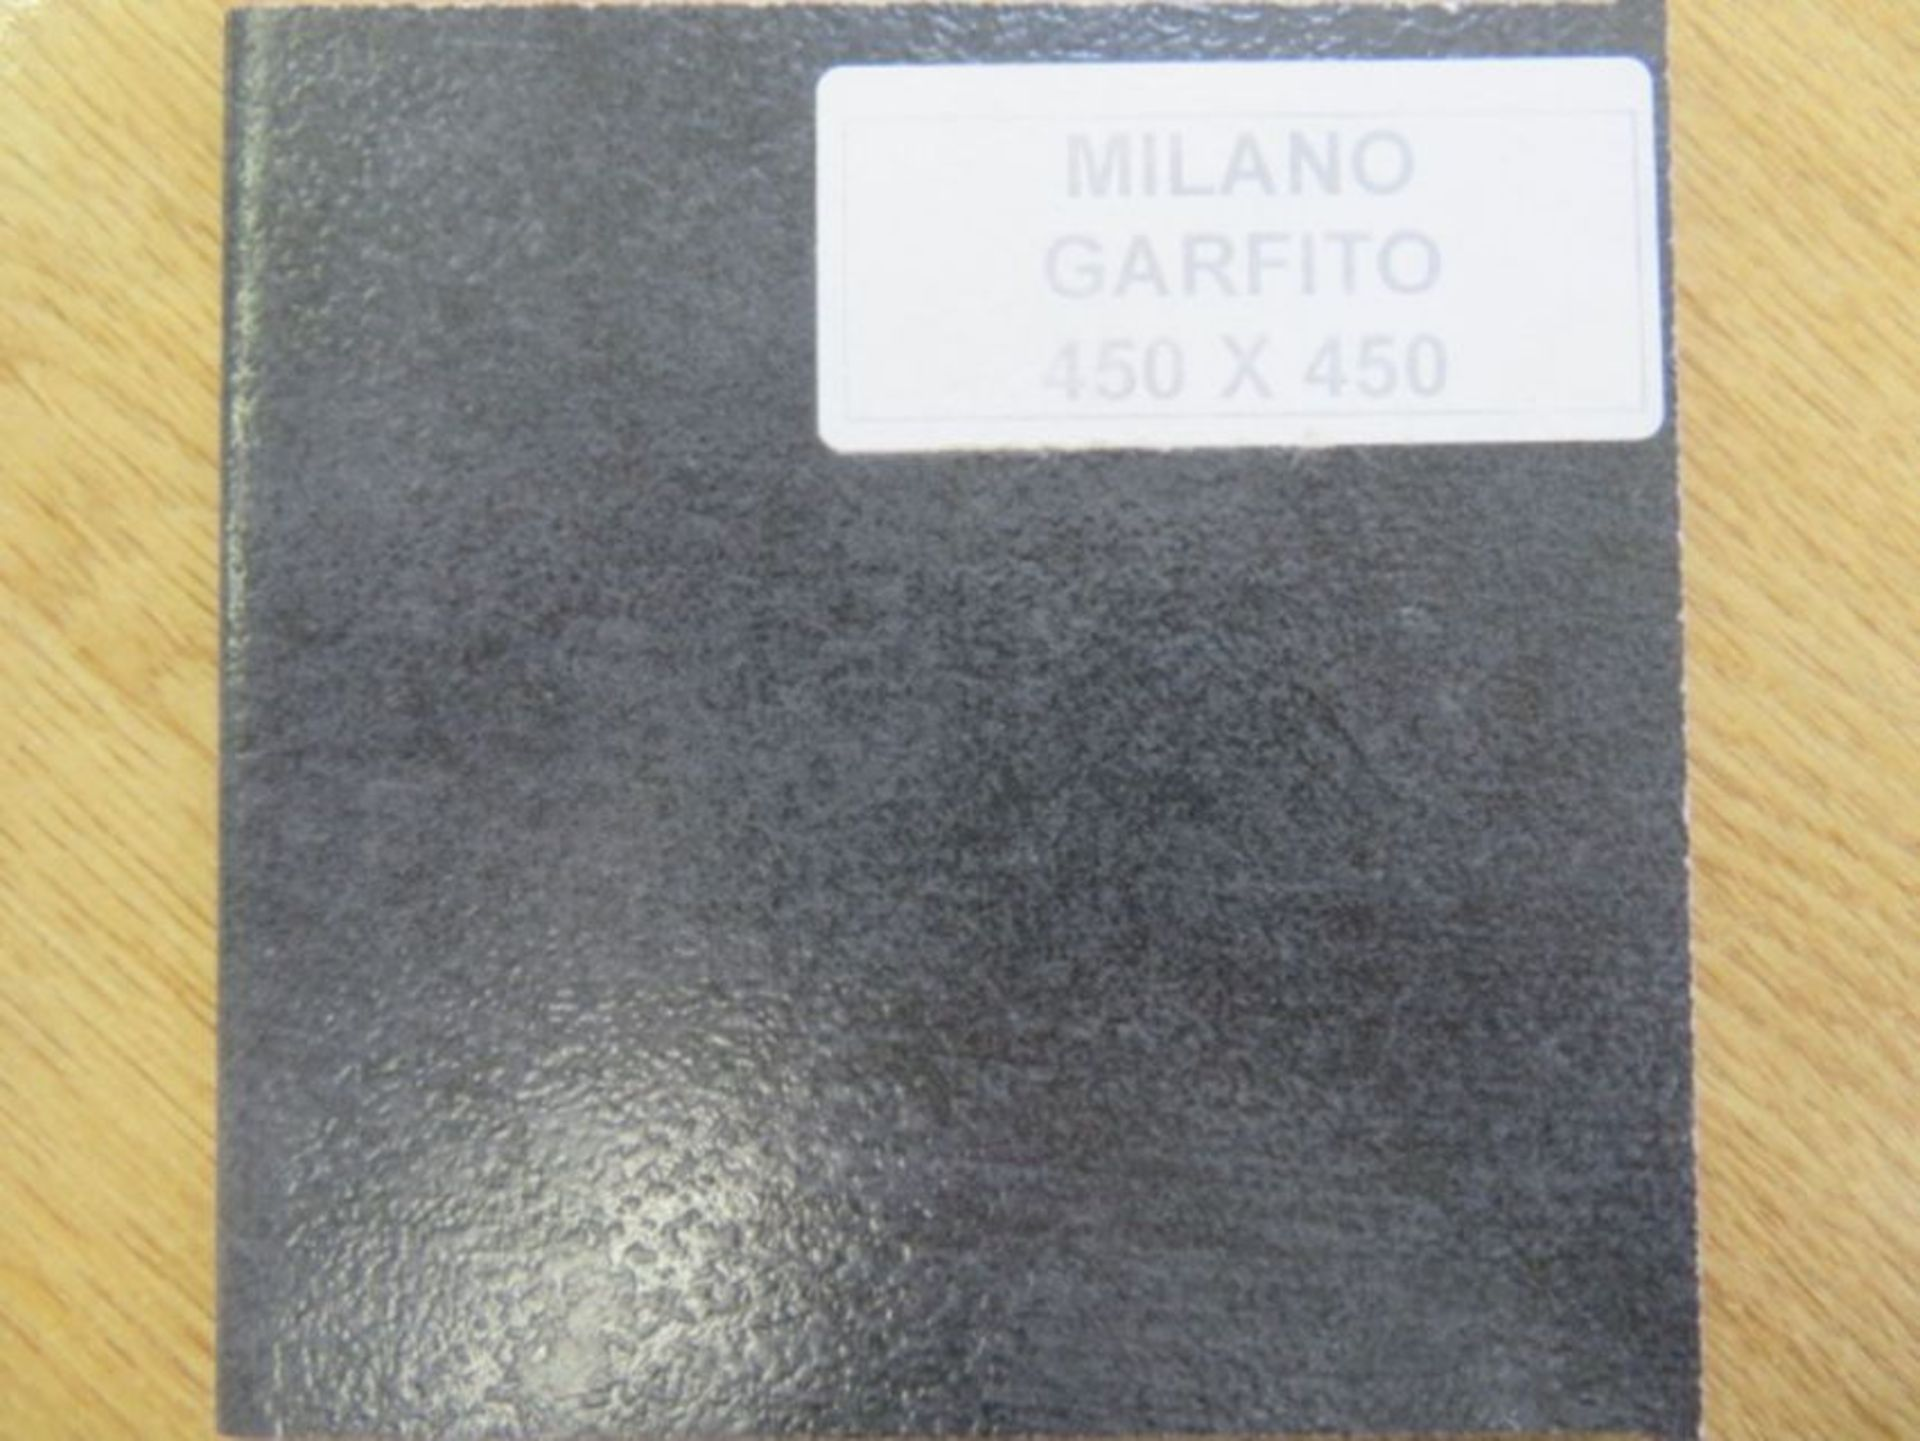 NEW 8.25m2 Milano Garfito Wall and Floor Tiles. 450x450mm per tile, 10mm Thick. Give your bathroom - Image 2 of 3